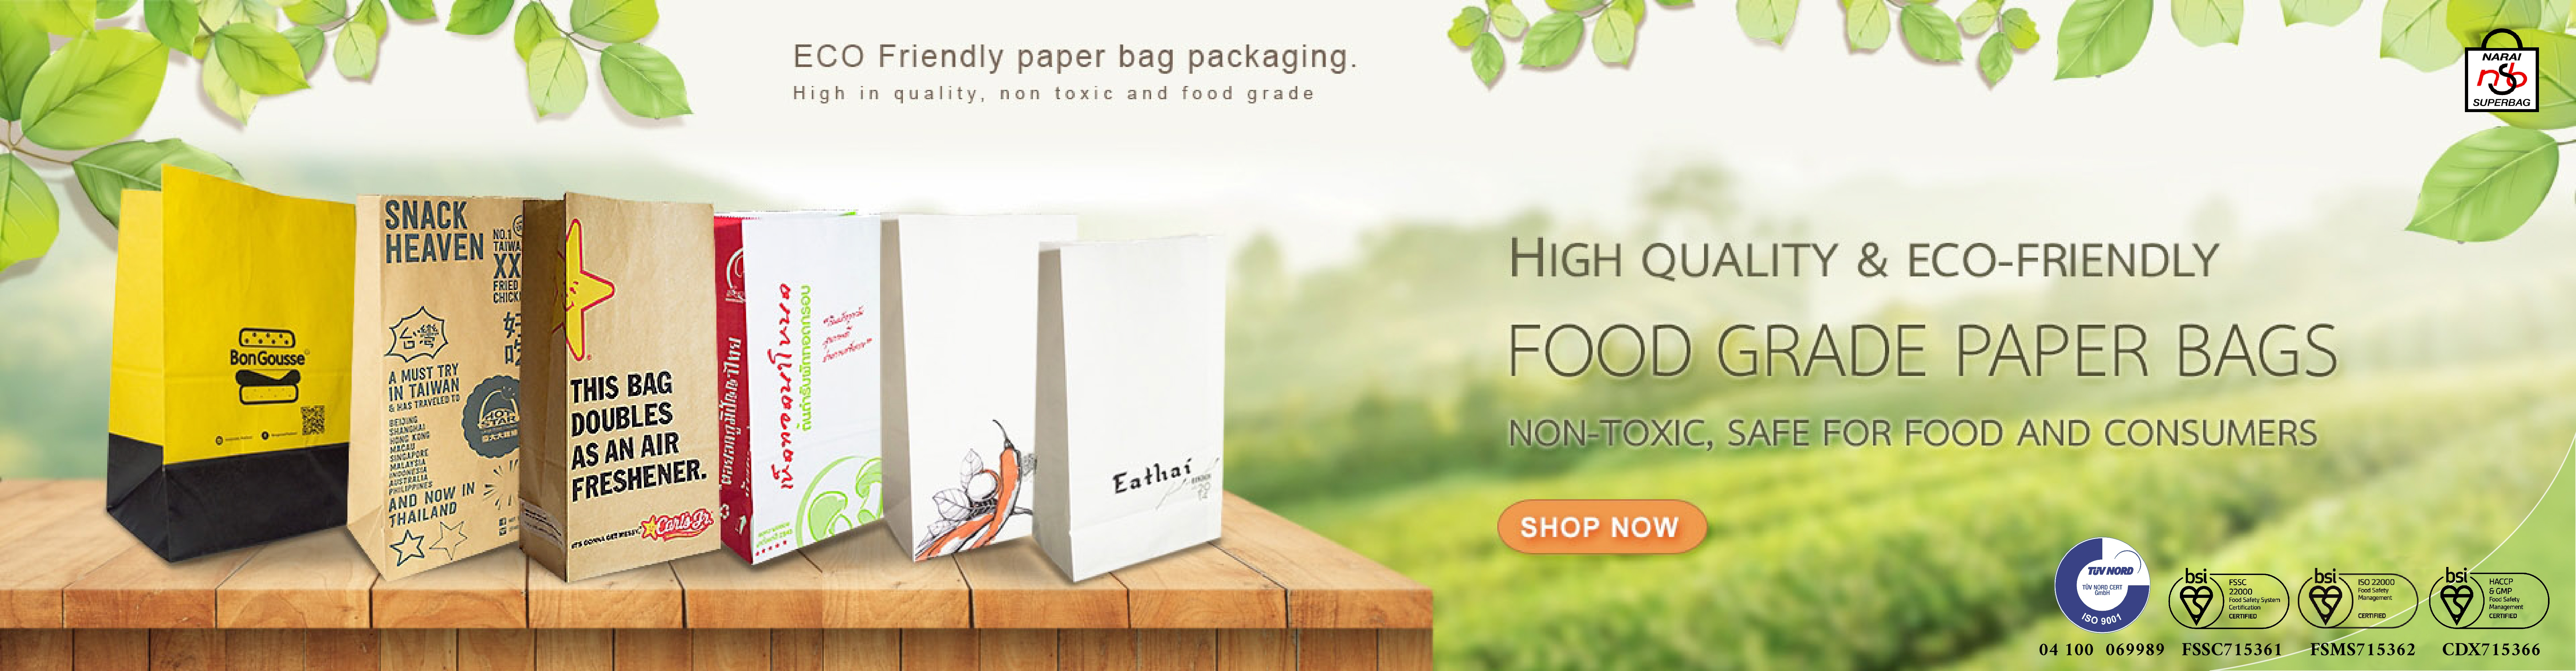 Food grade paper bag, Wrapping paper